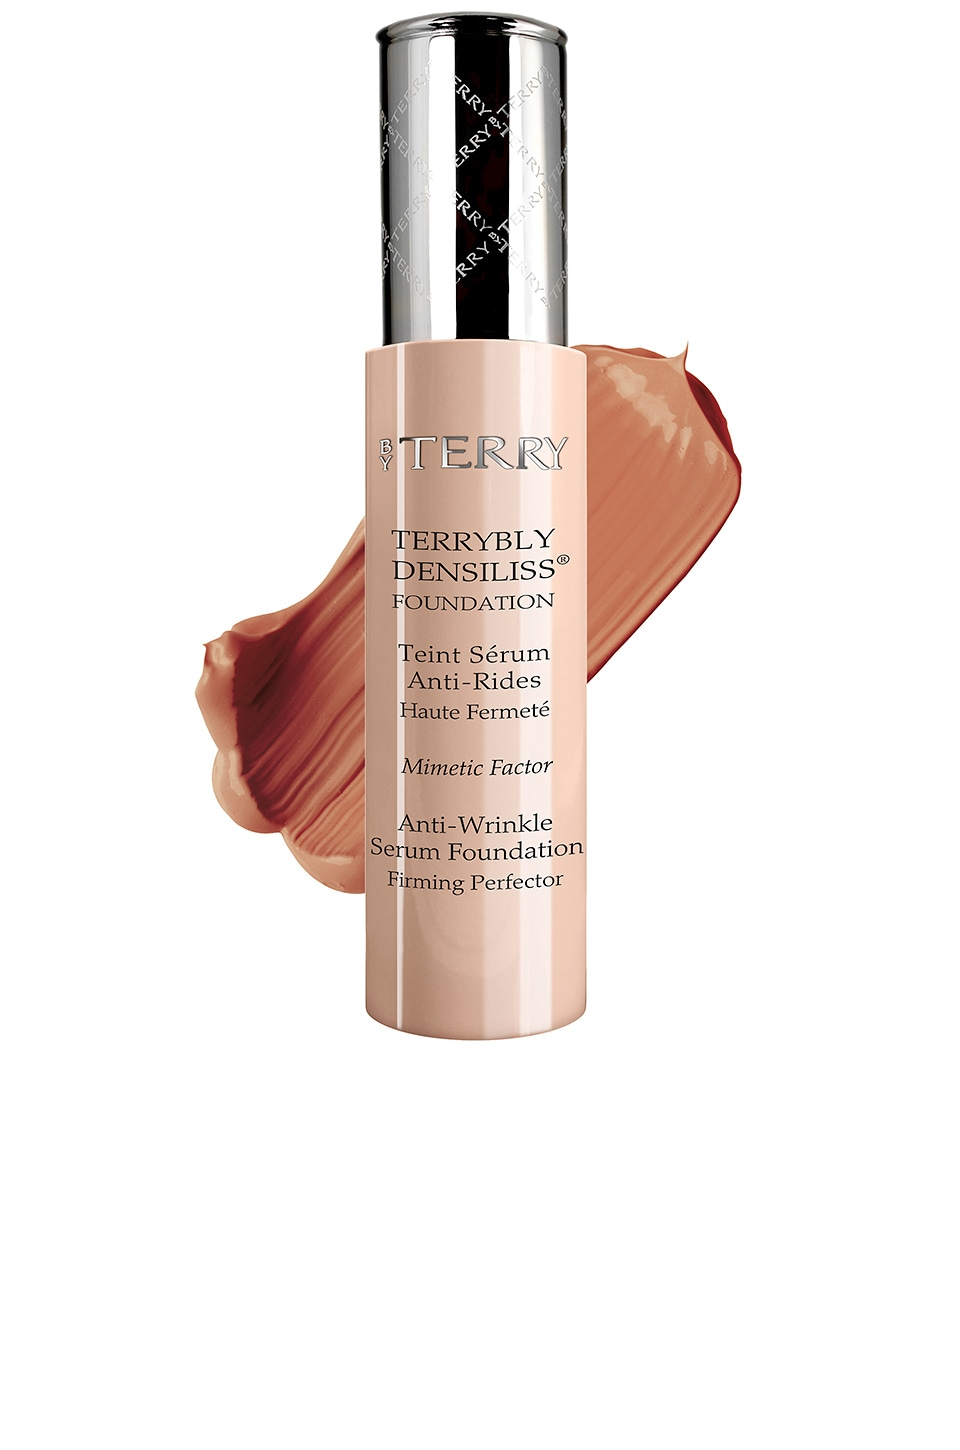 By Terry Terrybly Densiliss Serum Foundation in Sienna Copper